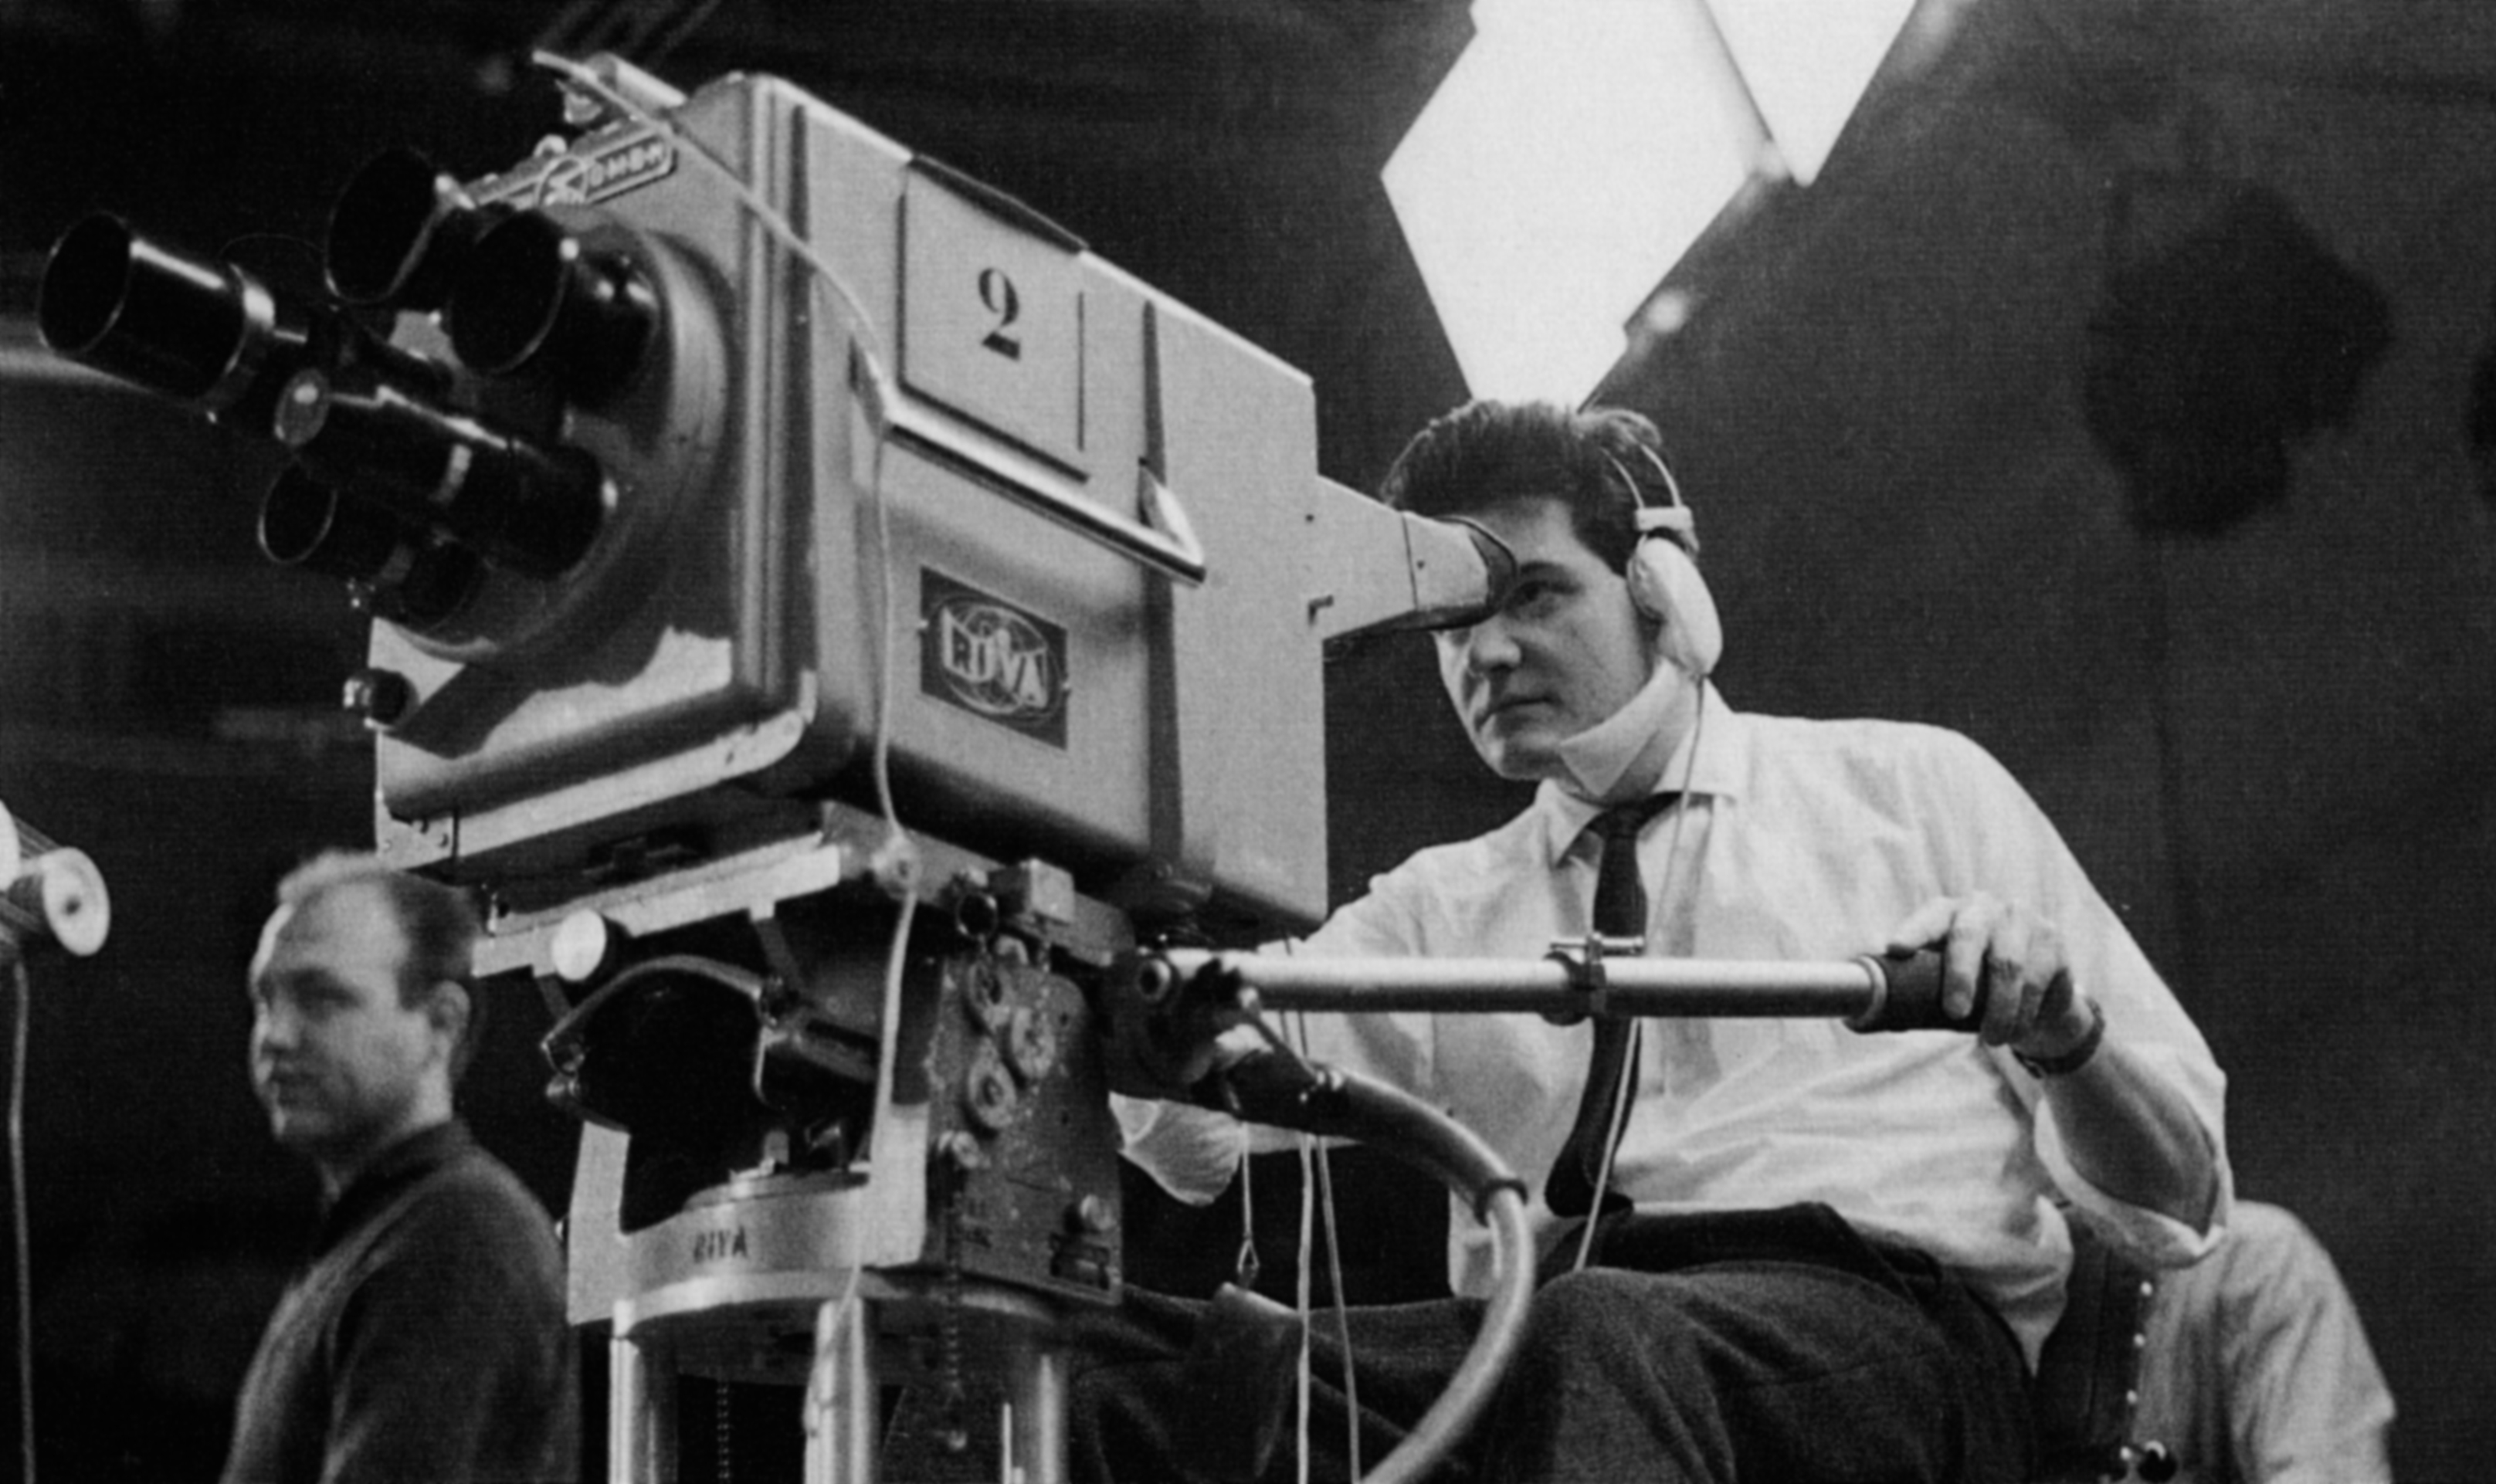 A youthful Ballhaus operates a broadcast camera during his television days in Baden-Baden.